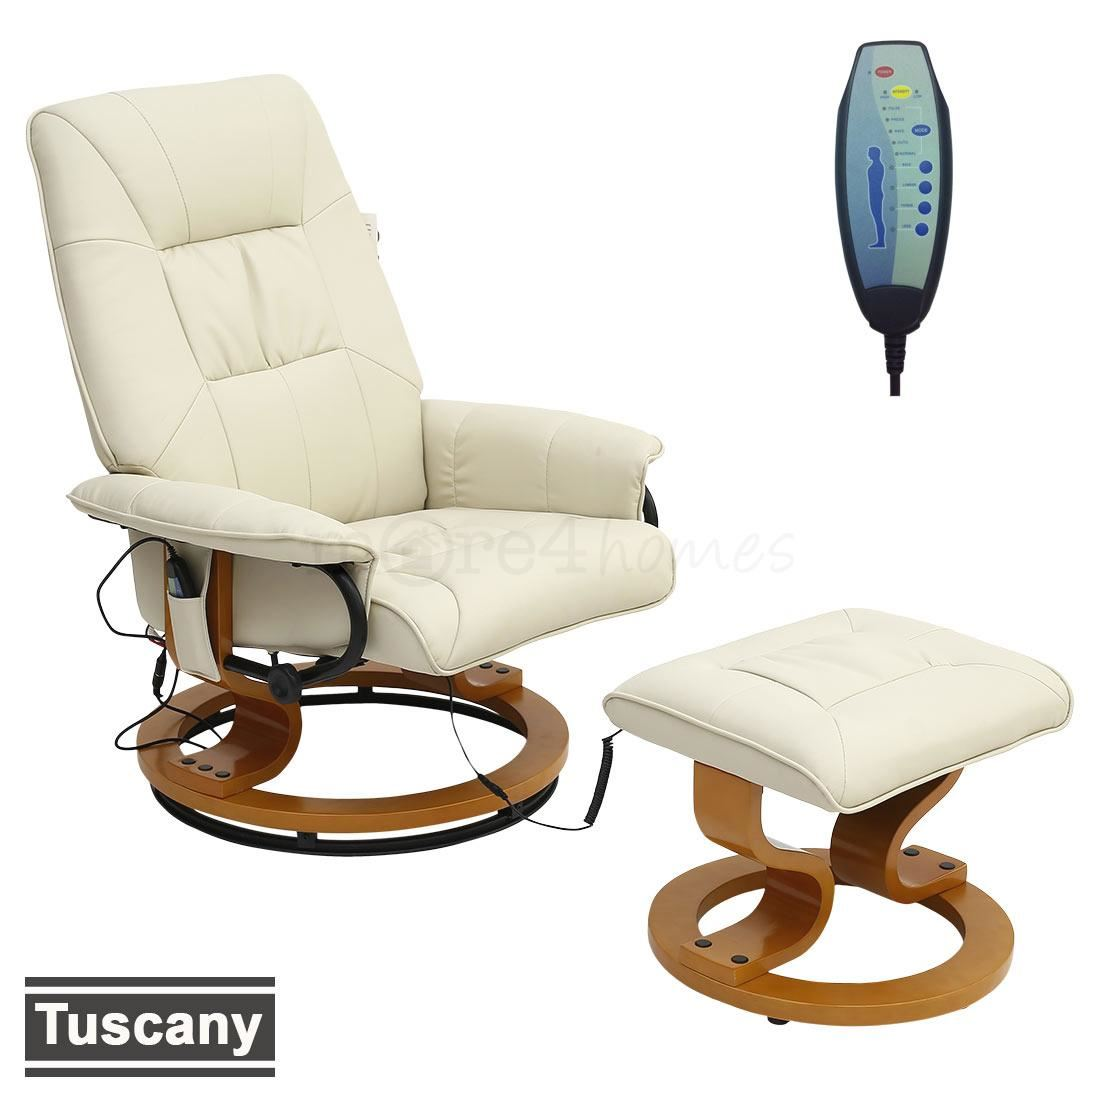 leather swivel recliner chair and stool copa beach tuscany real cream massage w